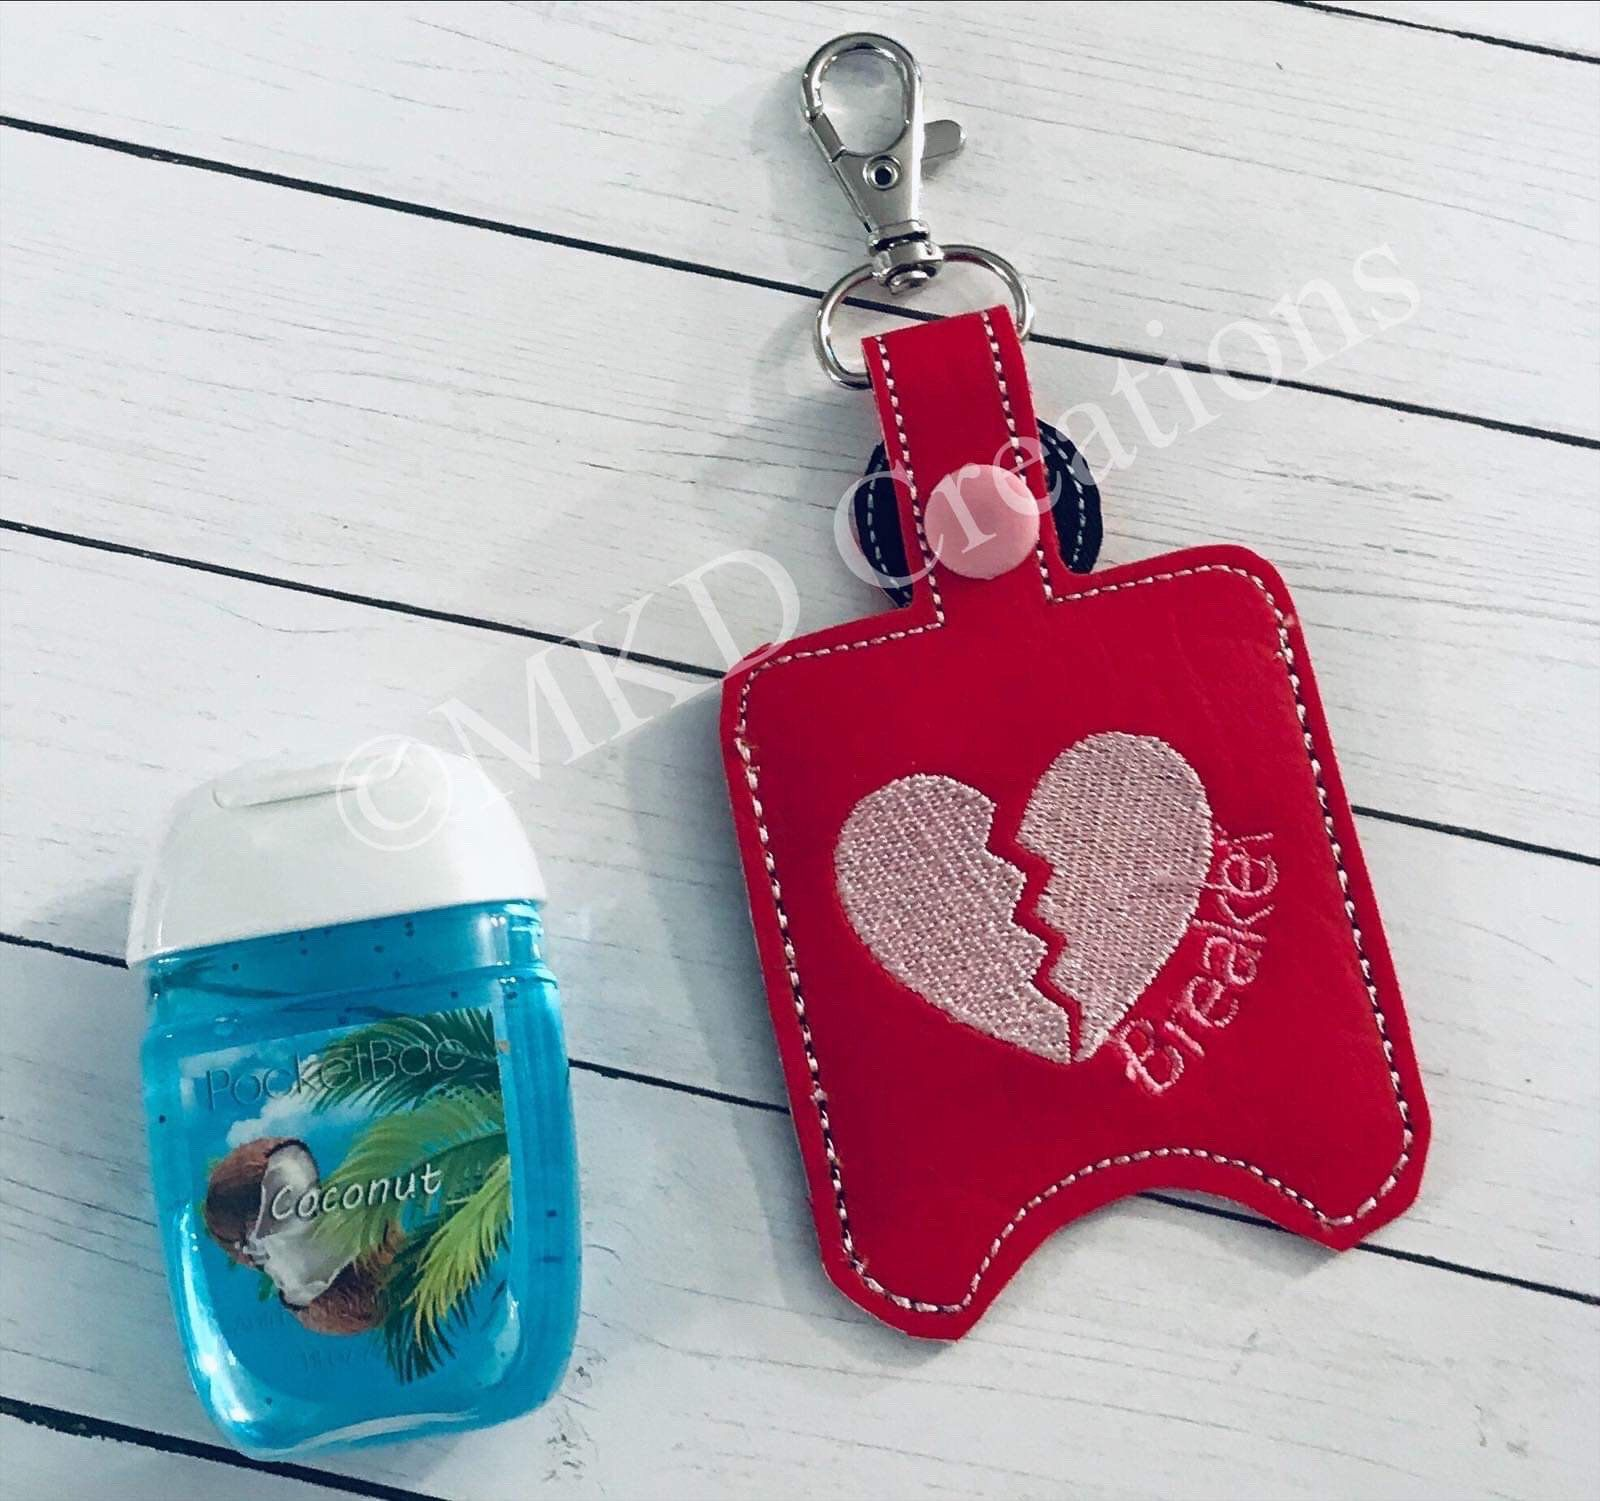 Red With Heartbreaker Key Chain Hand Sanitizer Holder W O 1 Oz